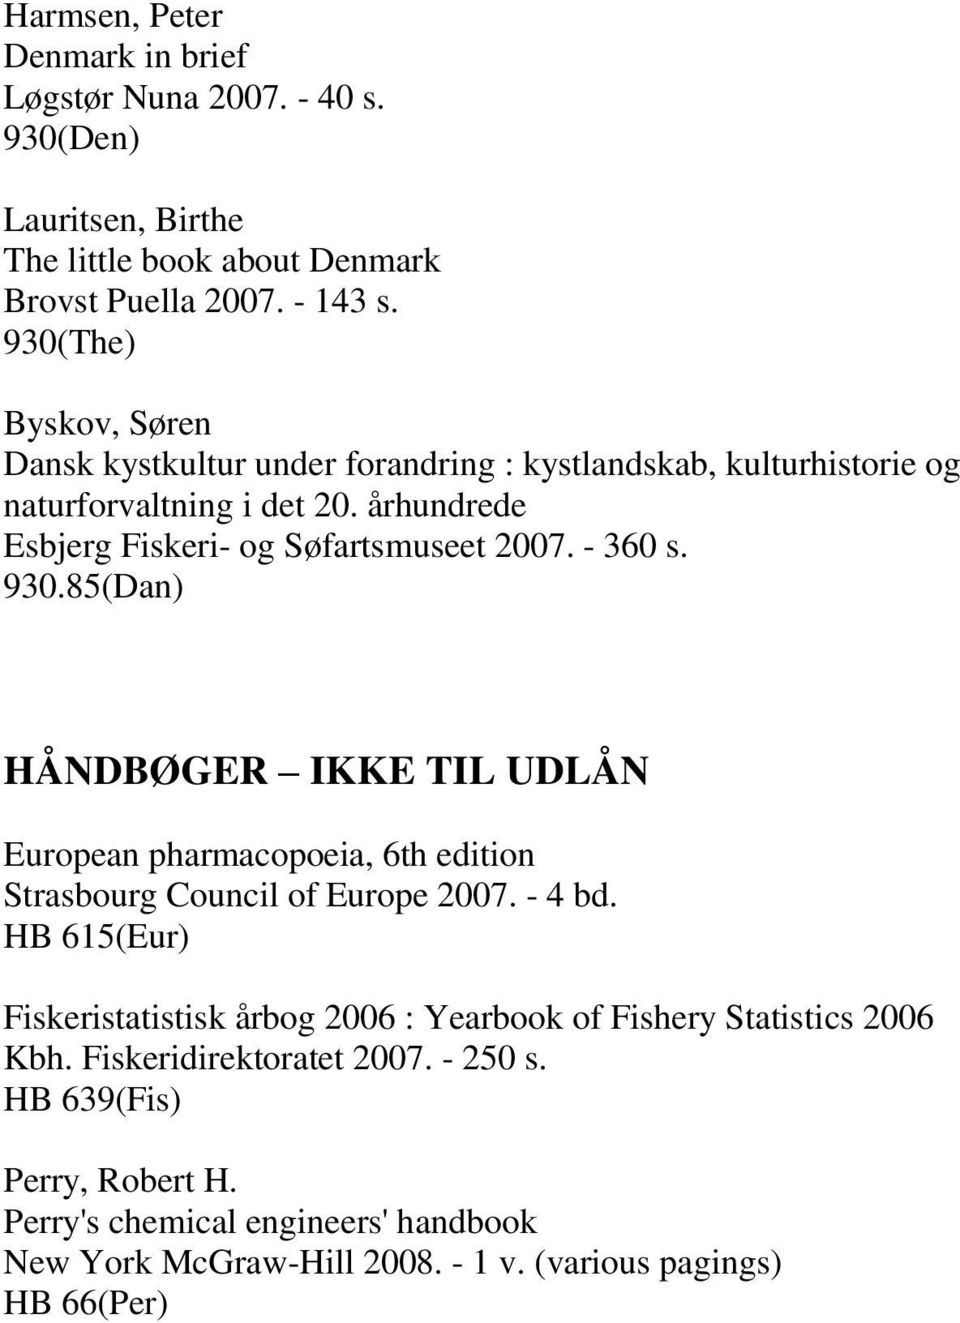 - 360 s. 930.85(Dan) HÅNDBØGER IKKE TIL UDLÅN European pharmacopoeia, 6th edition Strasbourg Council of Europe 2007. - 4 bd.